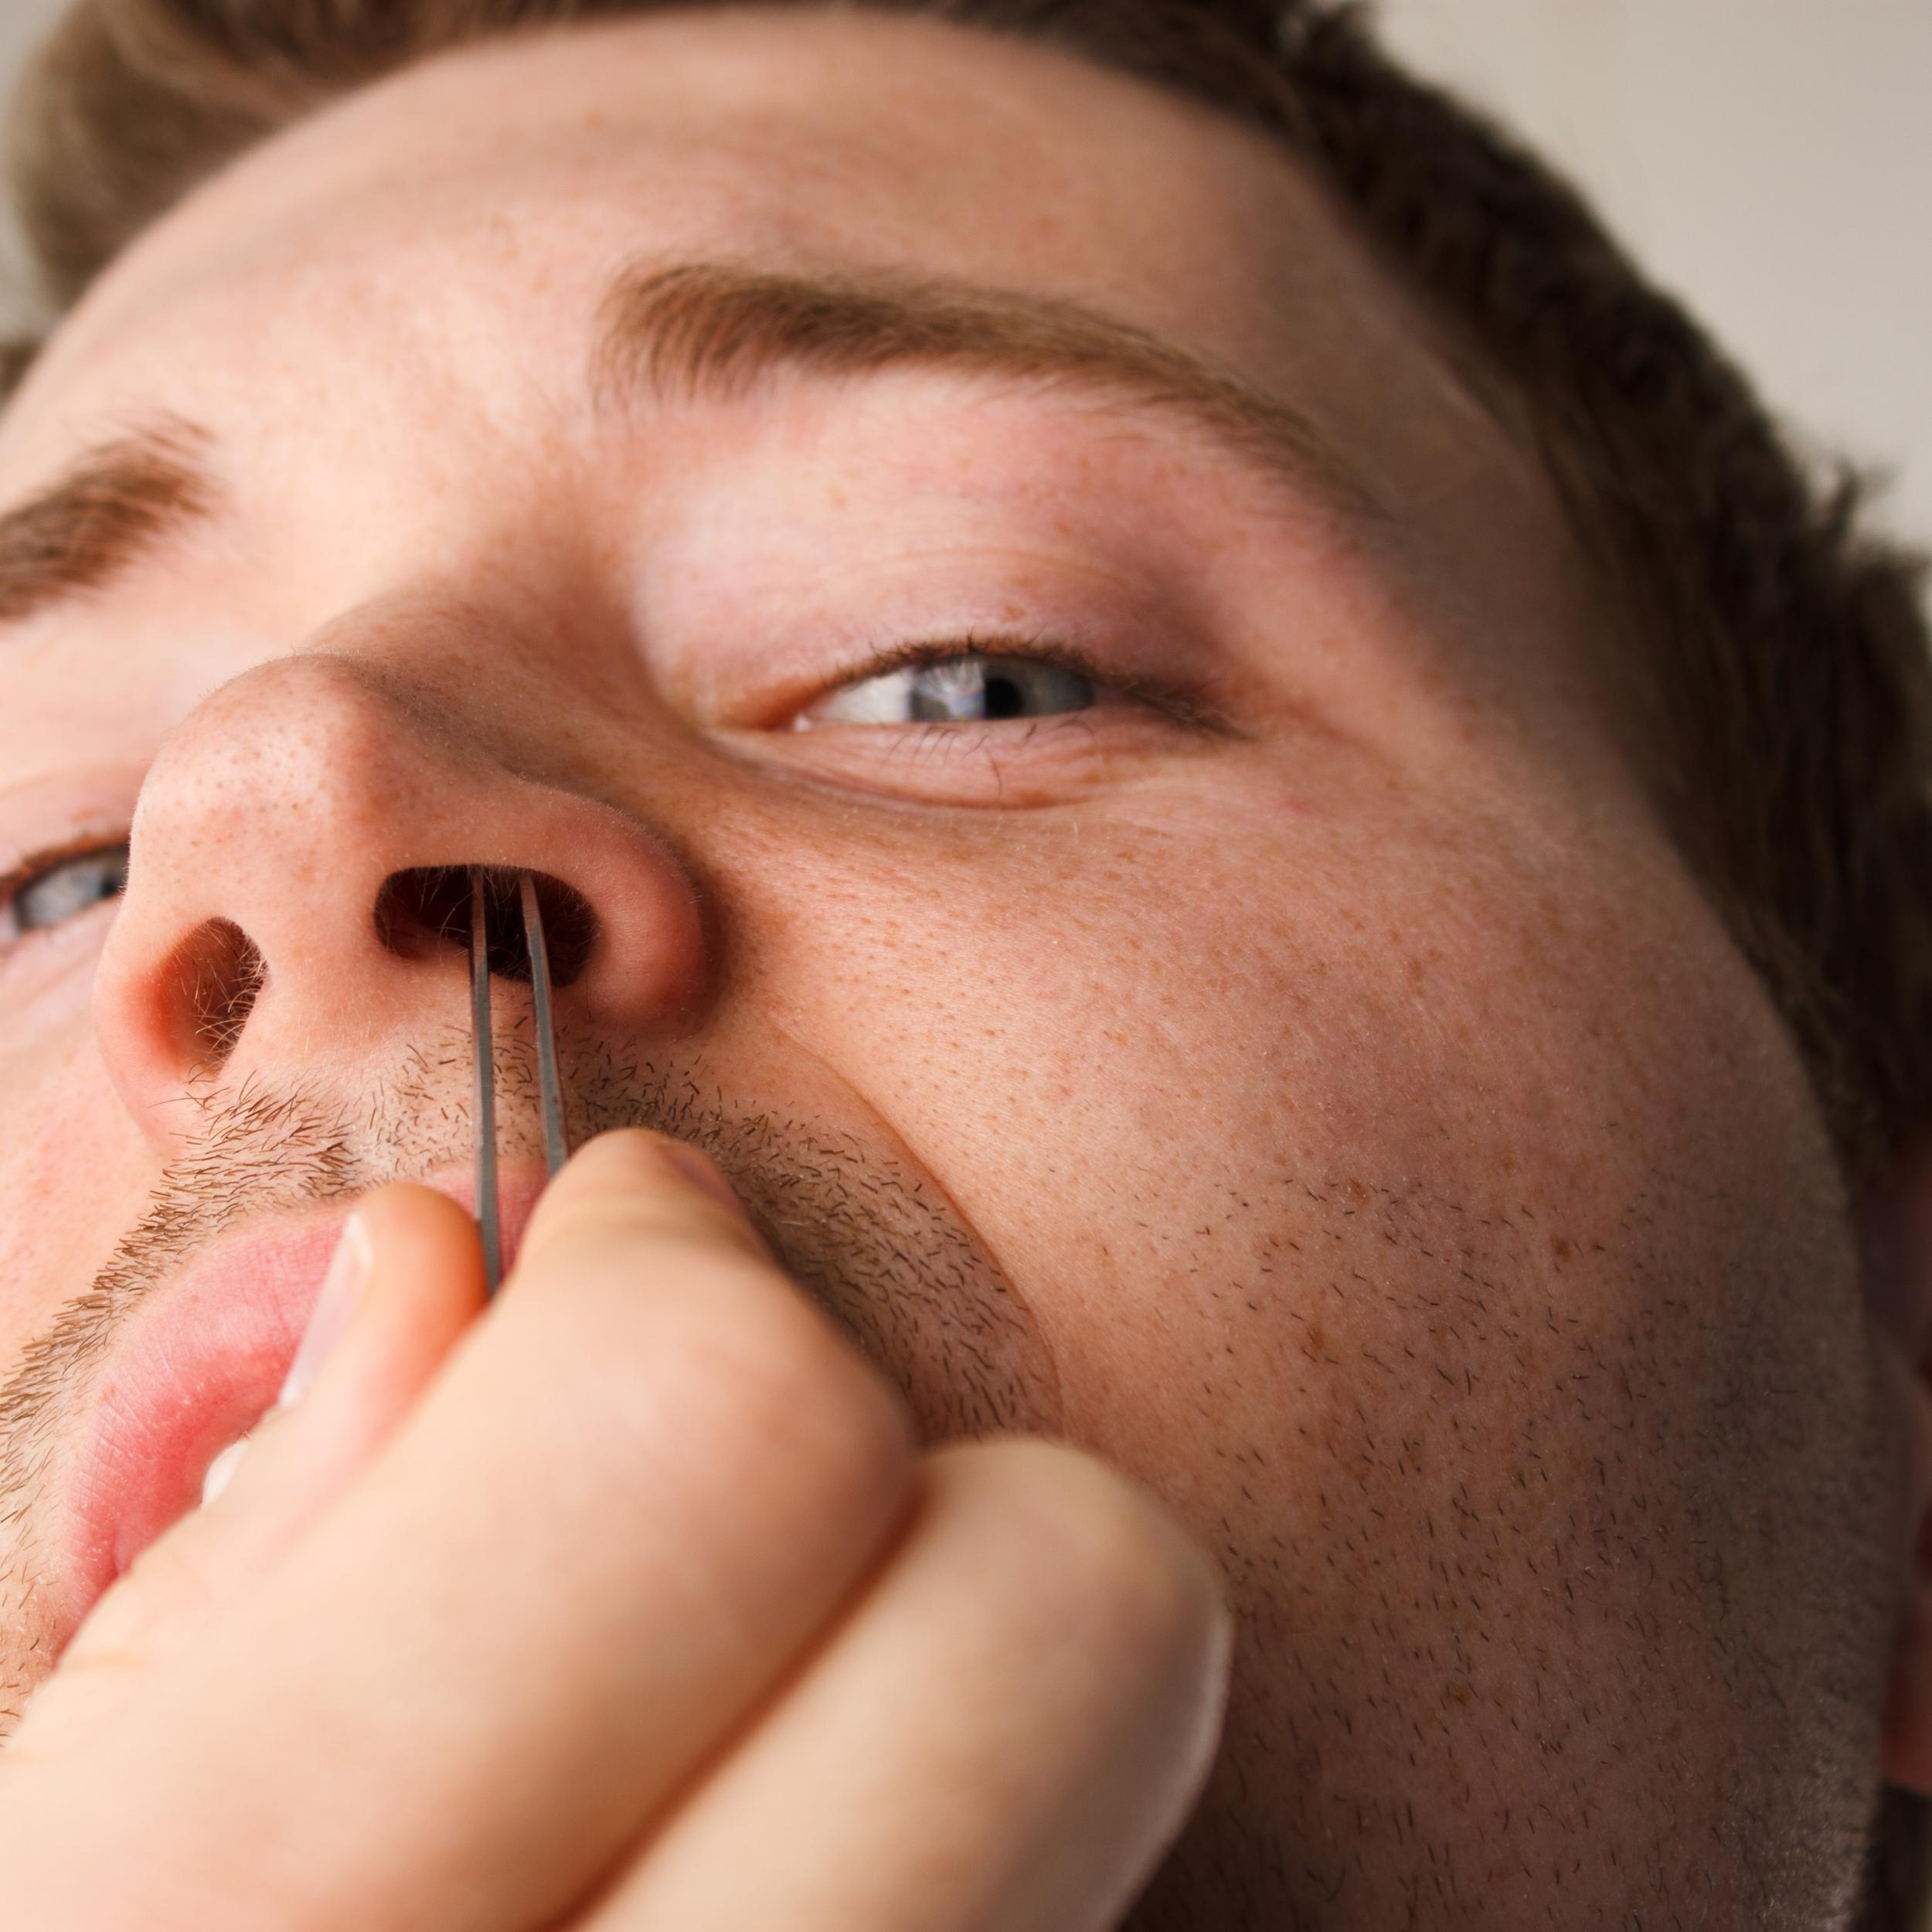 The Nose Knows: 6 Things Your Nose Tells You About Your Health